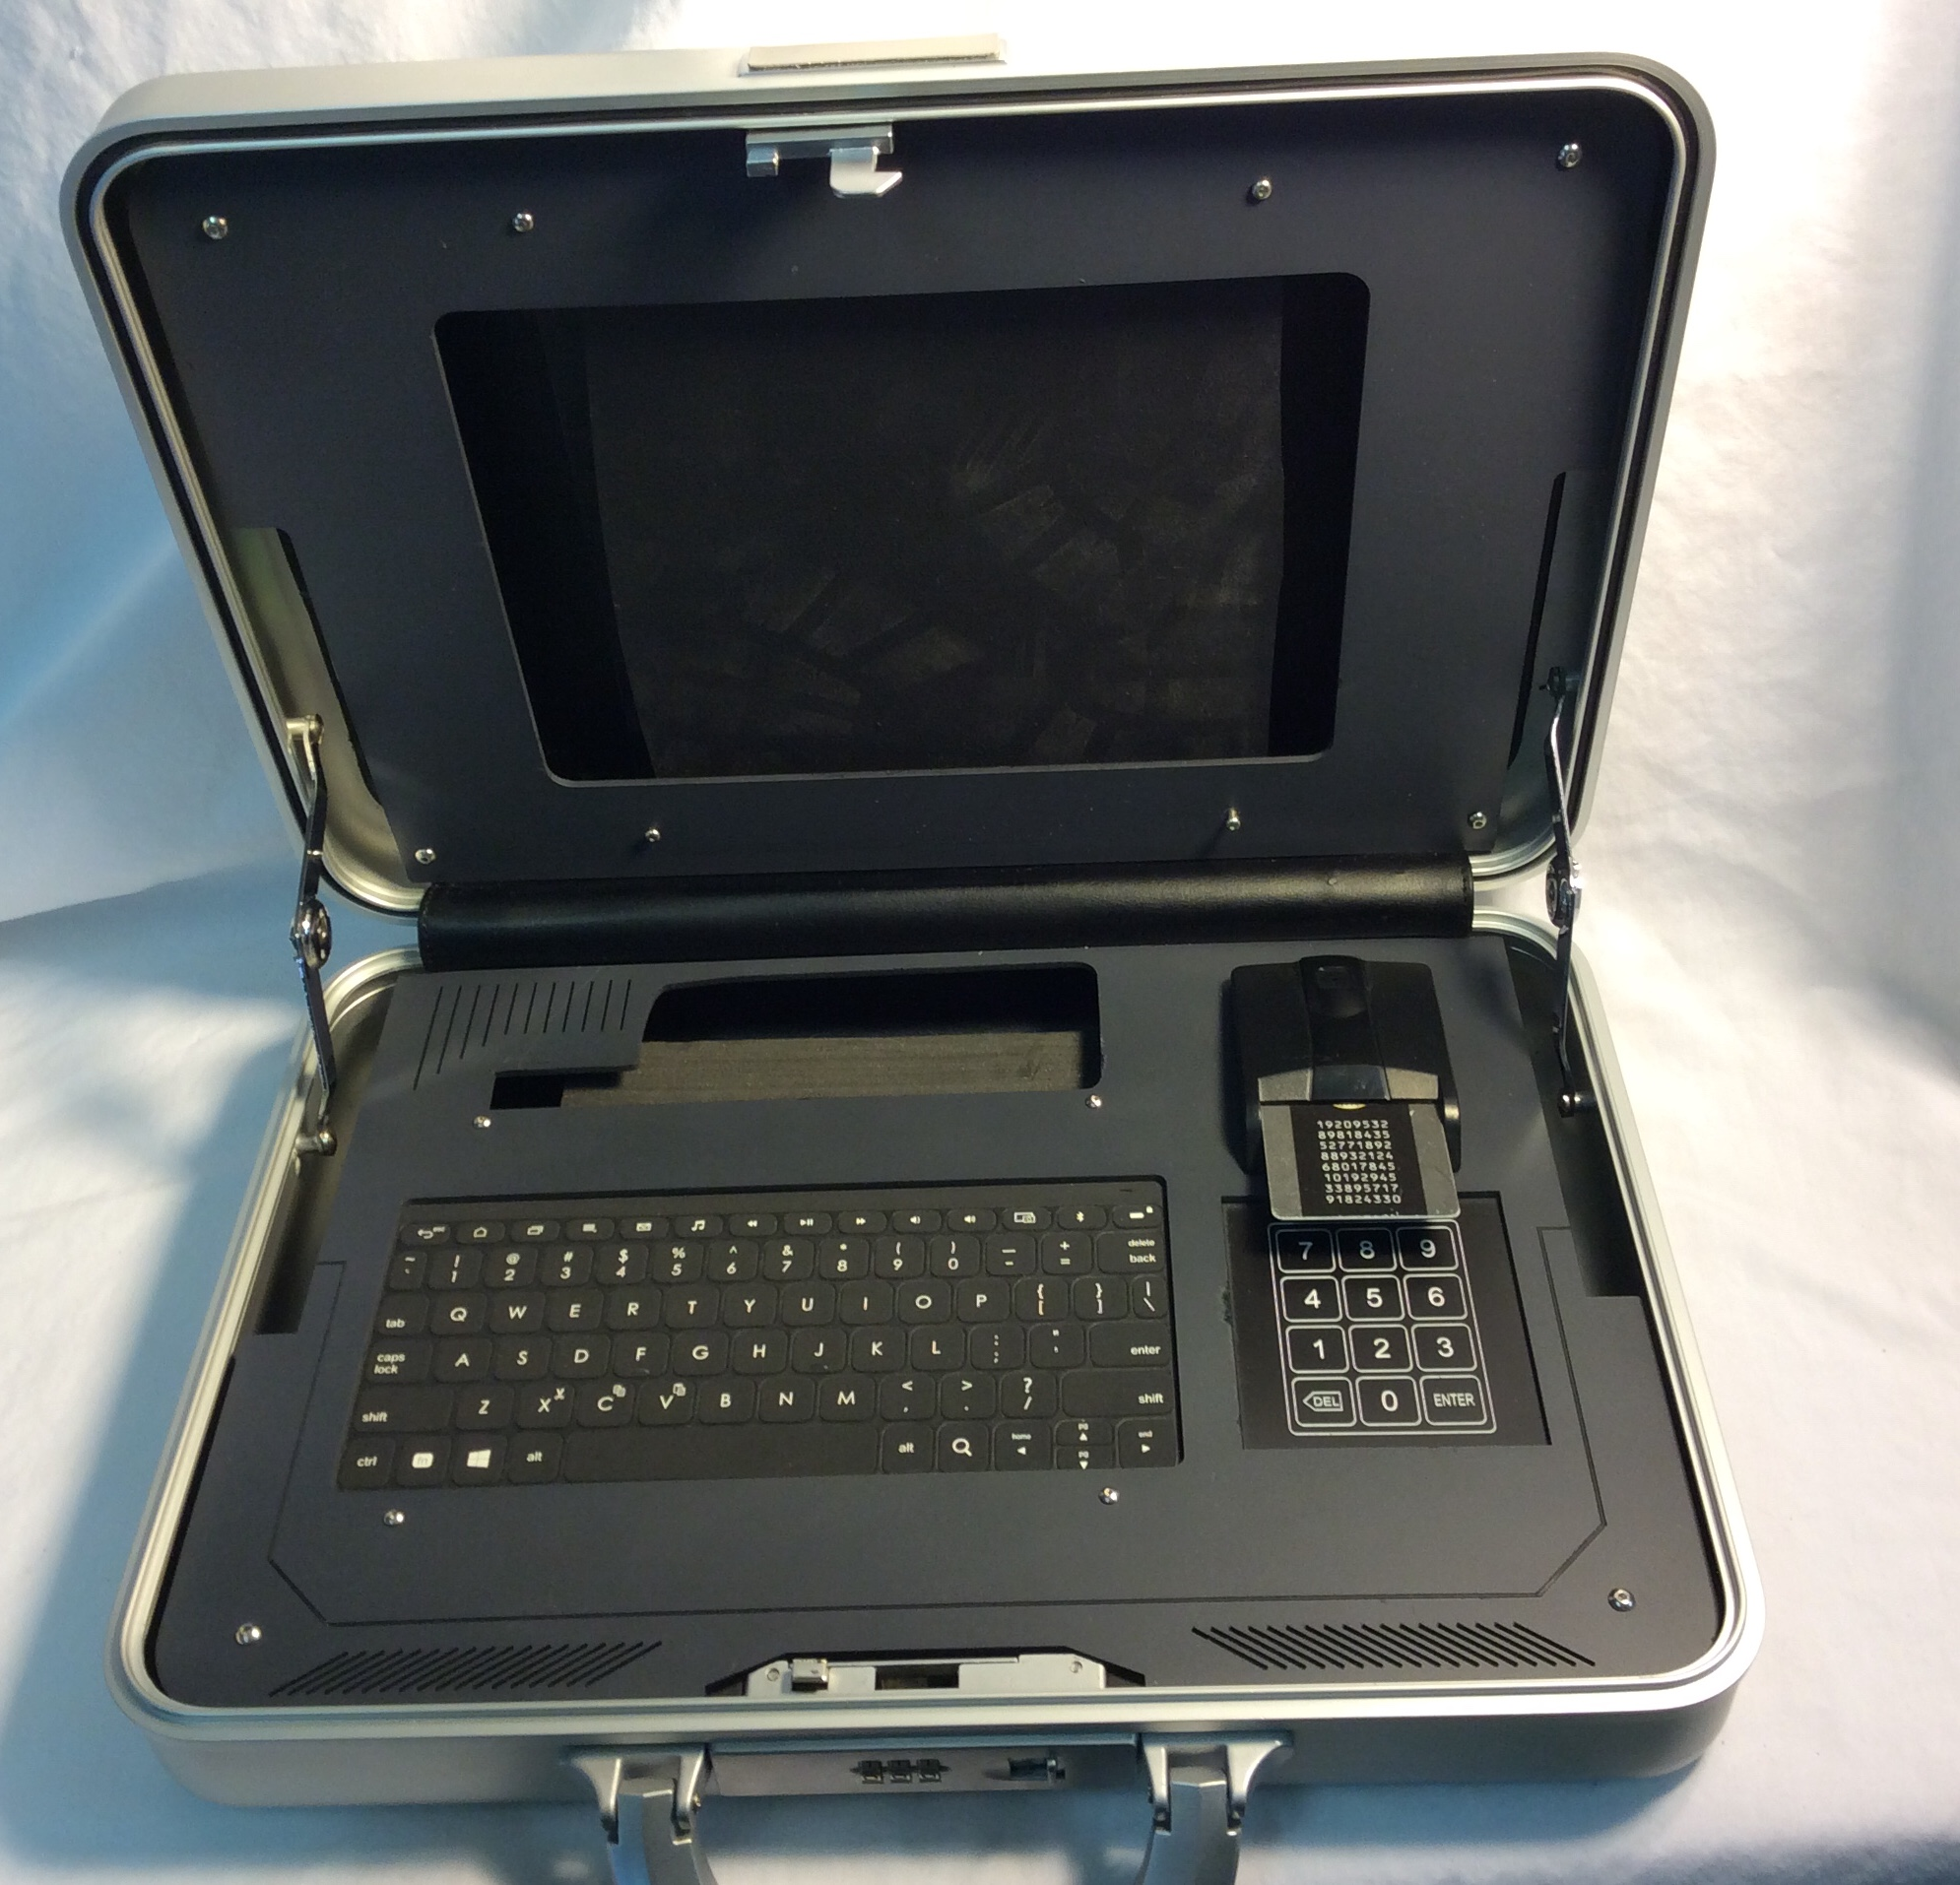 Custom built computer (for tablet) in silver security case